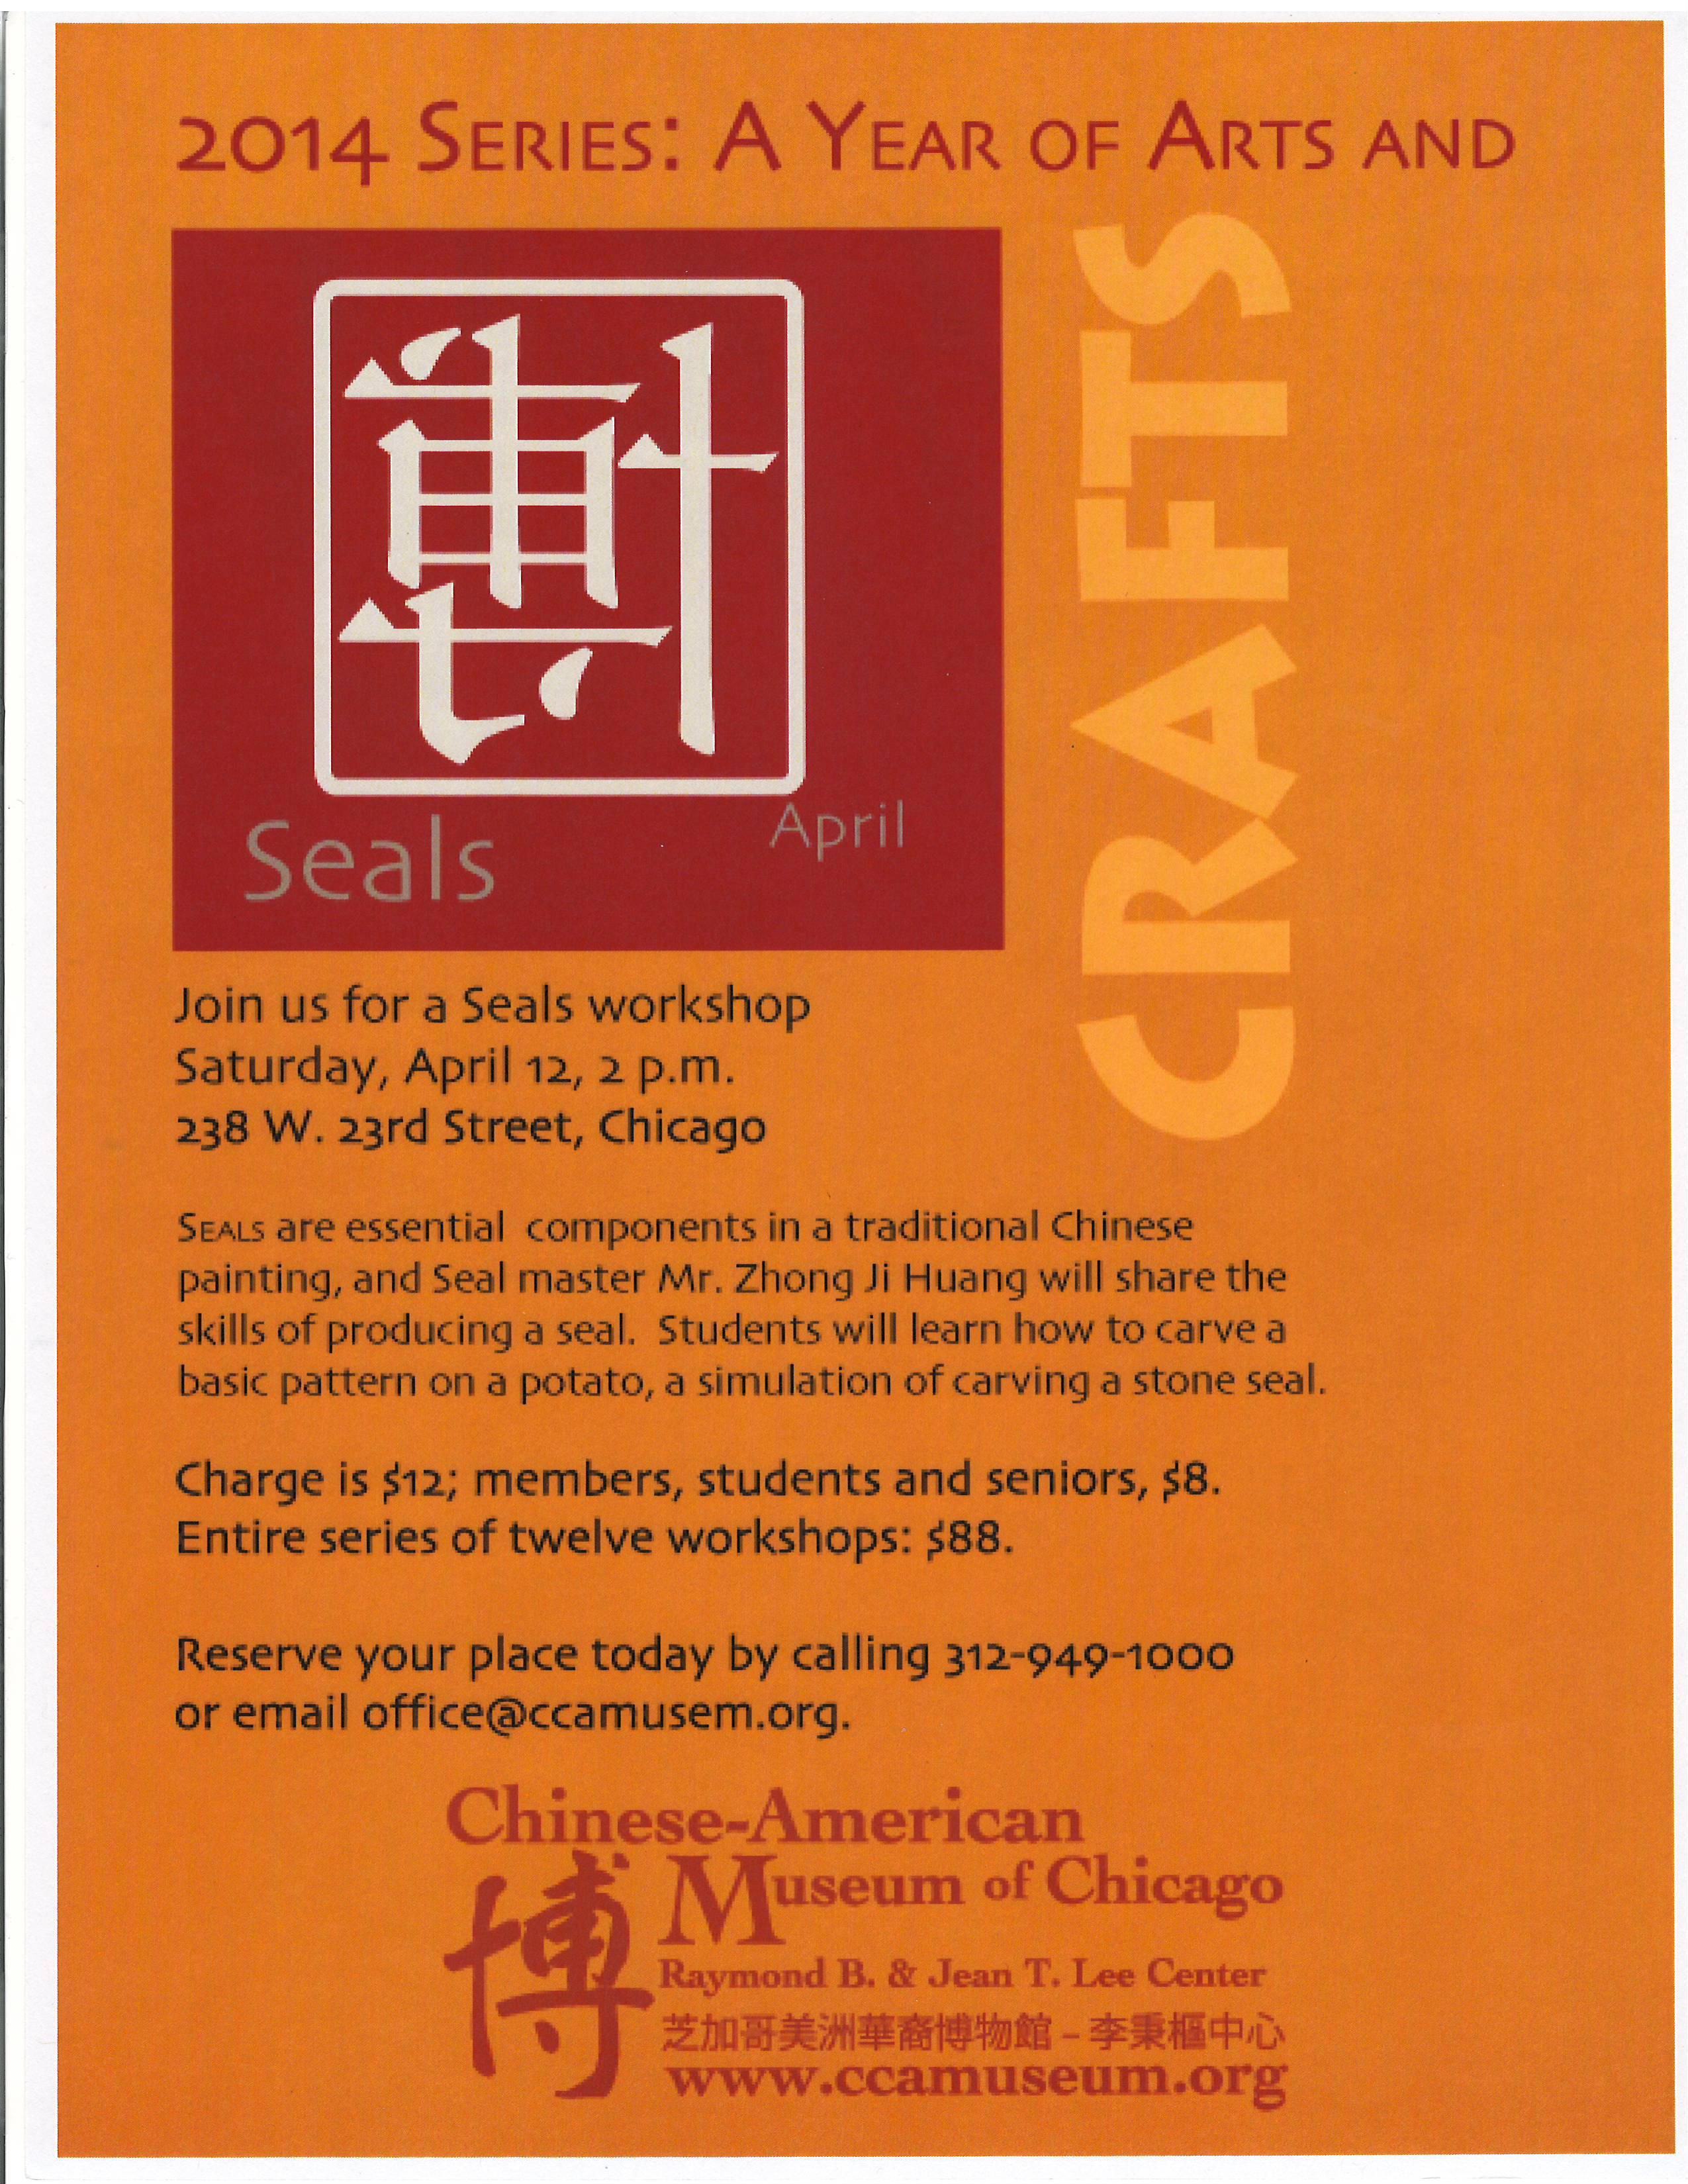 Seals Workshop at the Asian American Museum @ Chicago | Illinois | United States